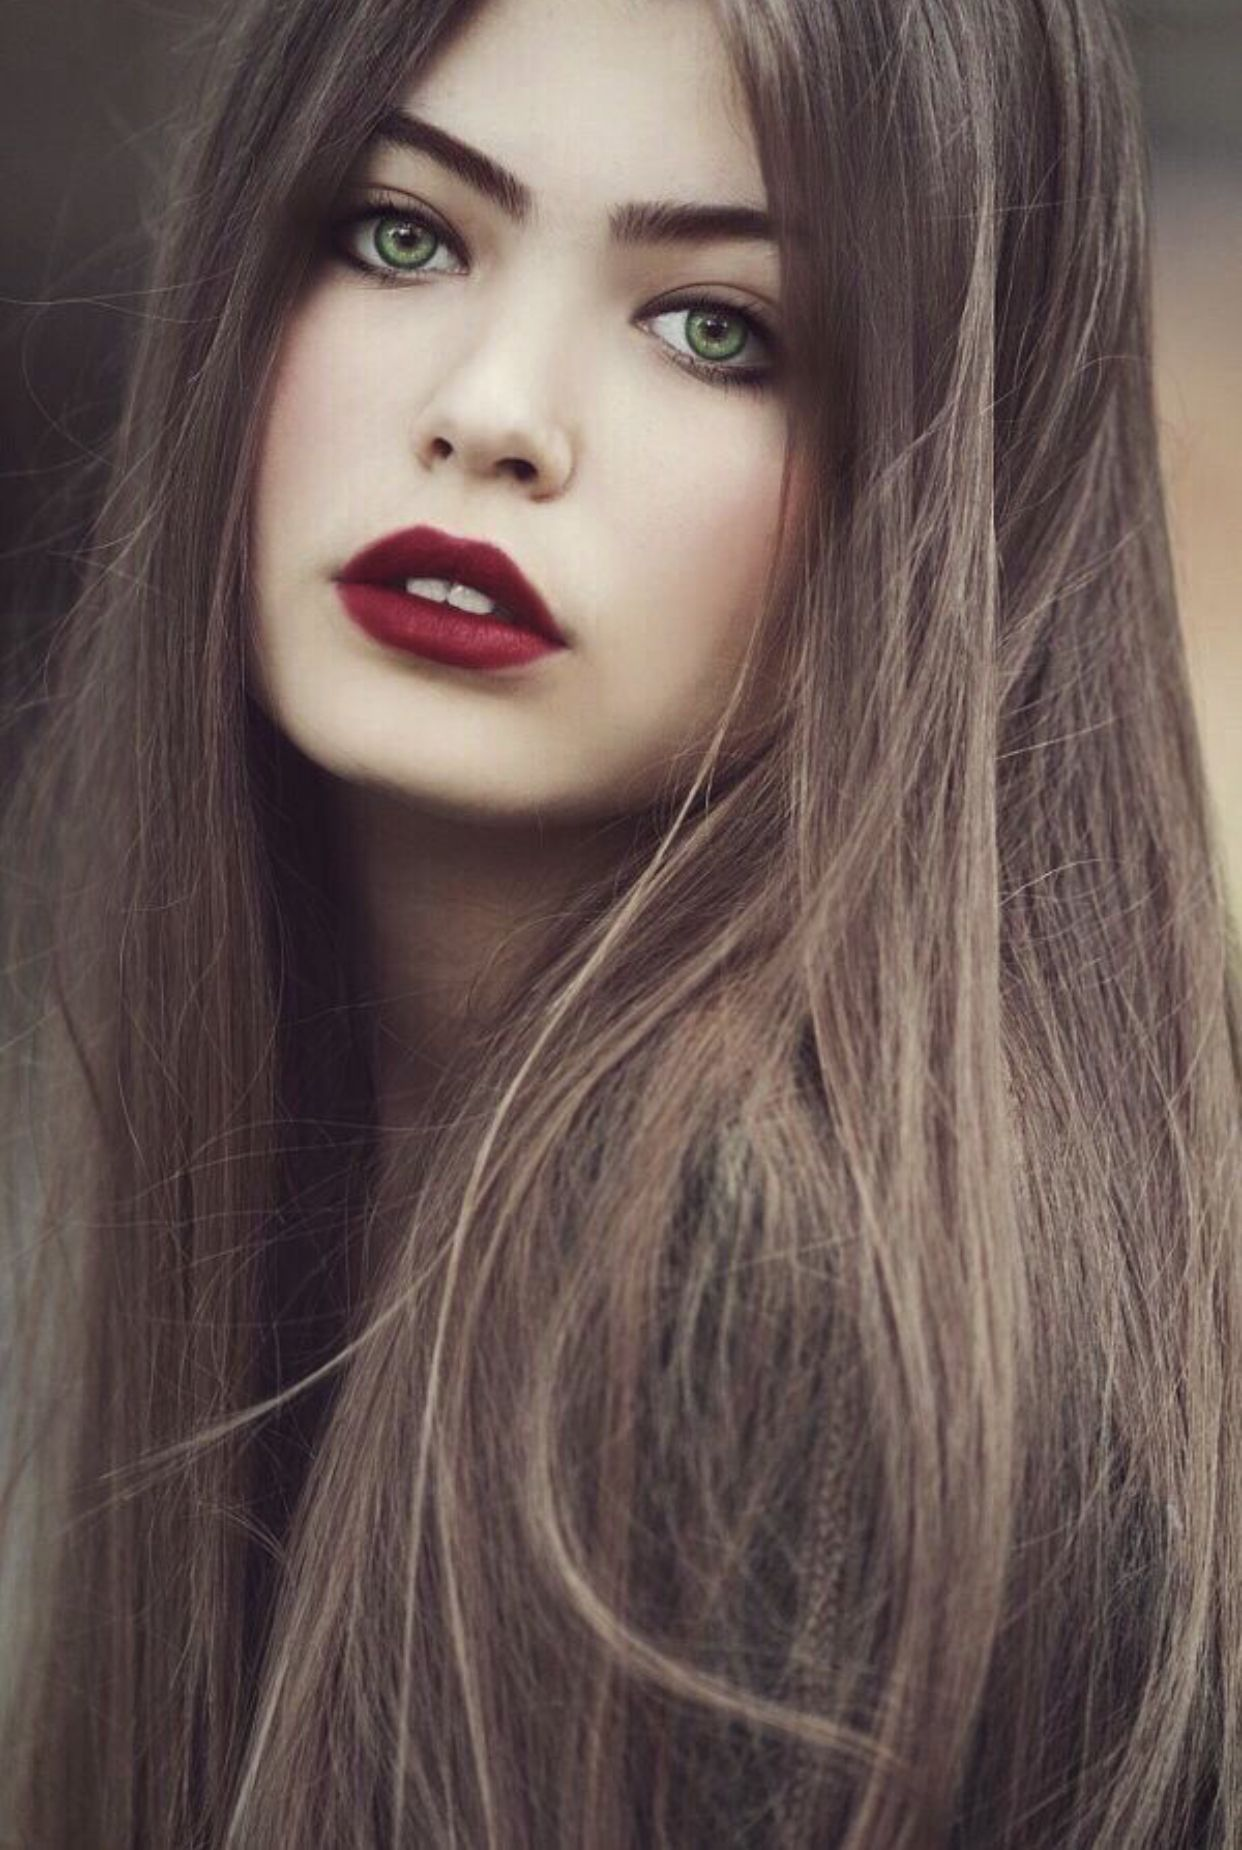 Pin By Kelly Hearden On Jovana Rikalo Hair Colour For Green Eyes Brown Hair Green Eyes Which Hair Colour